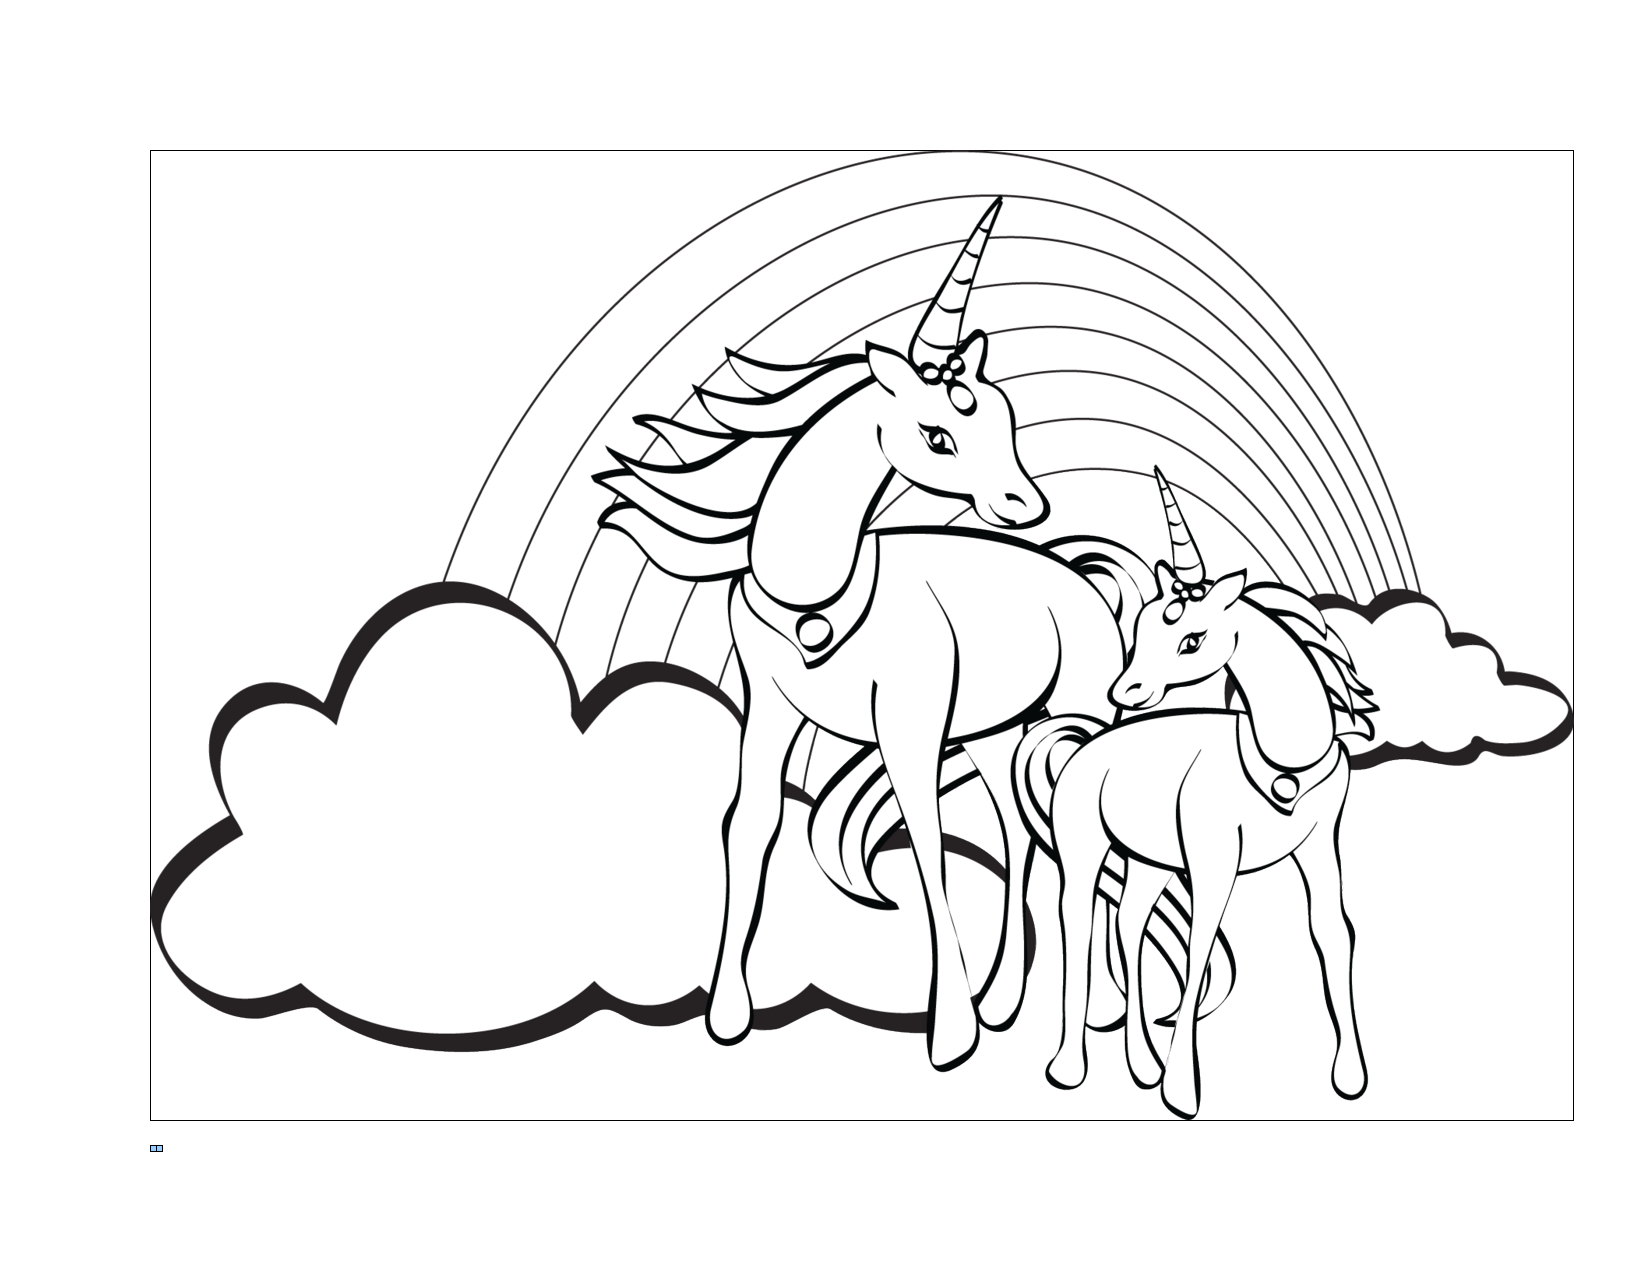 printable unicorn unicorn coloring pages what to expect printable unicorn